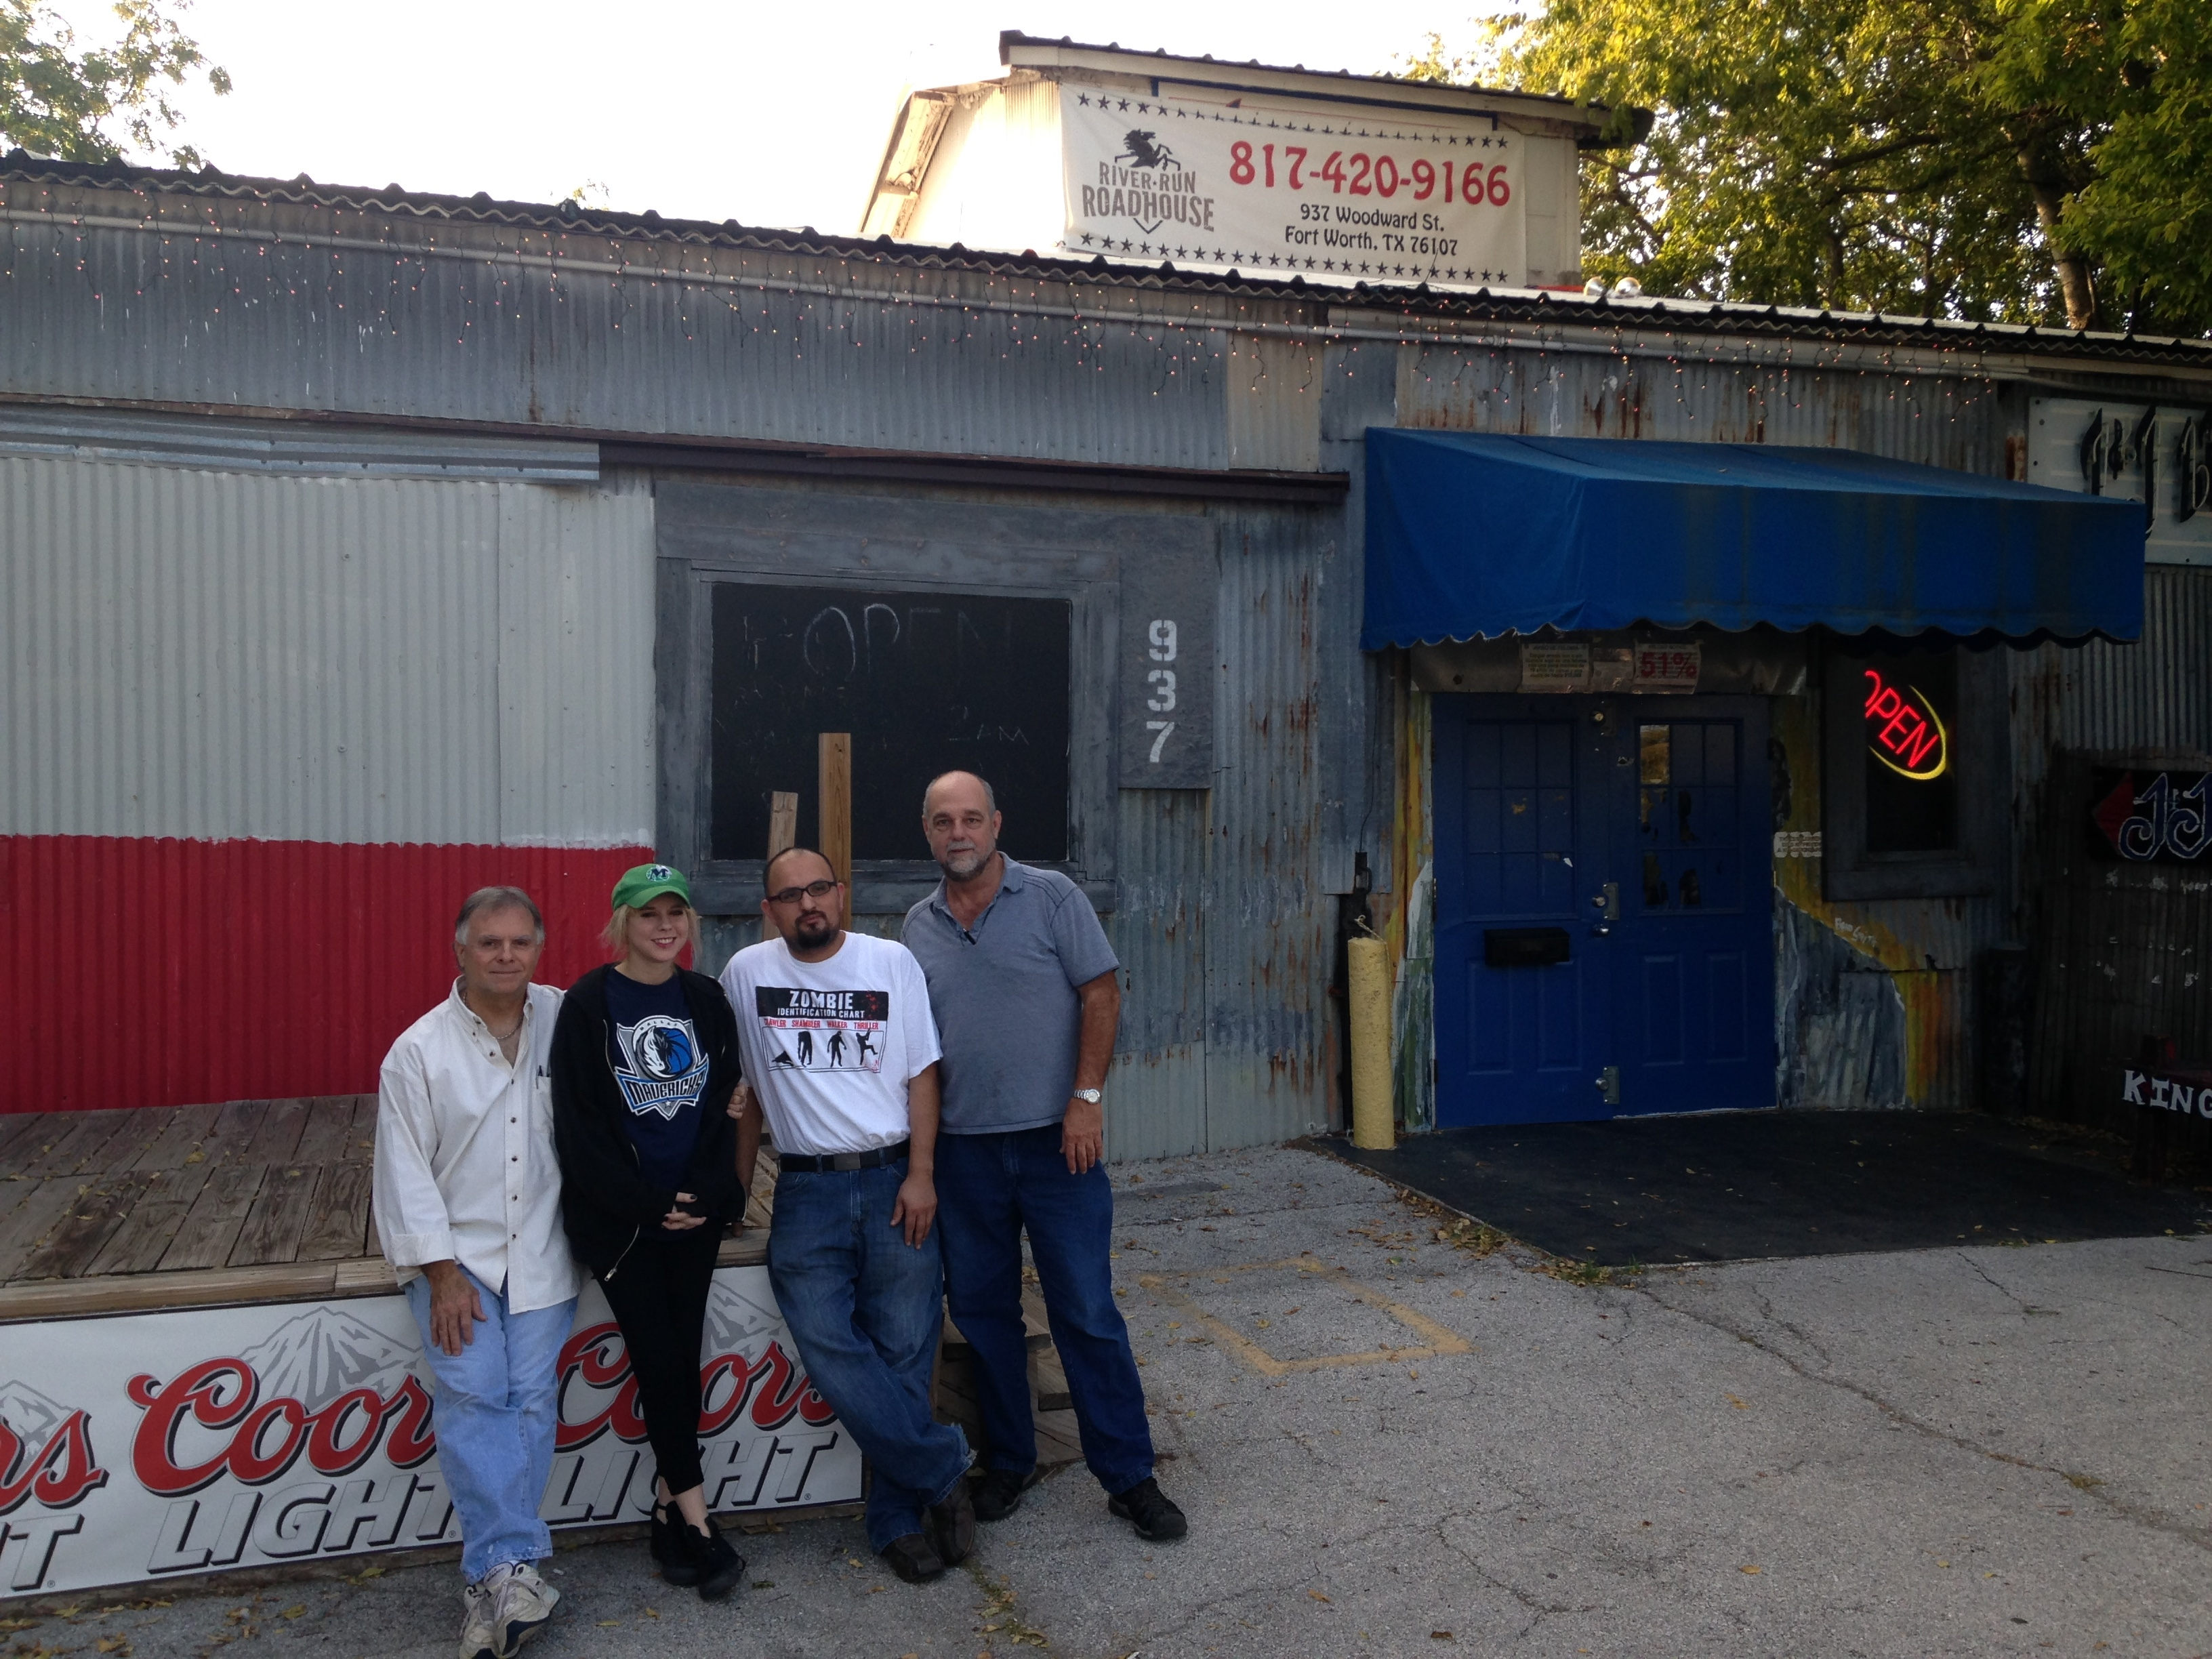 (From left to right) co-owner Robert Holt, booking agent/bartender Elizabeth Honea, head bartender Roy Cordova, and co-owner Don Stephan are ready for River Run Roadhouse to become a destination for all sorts of music, including indie-rock.